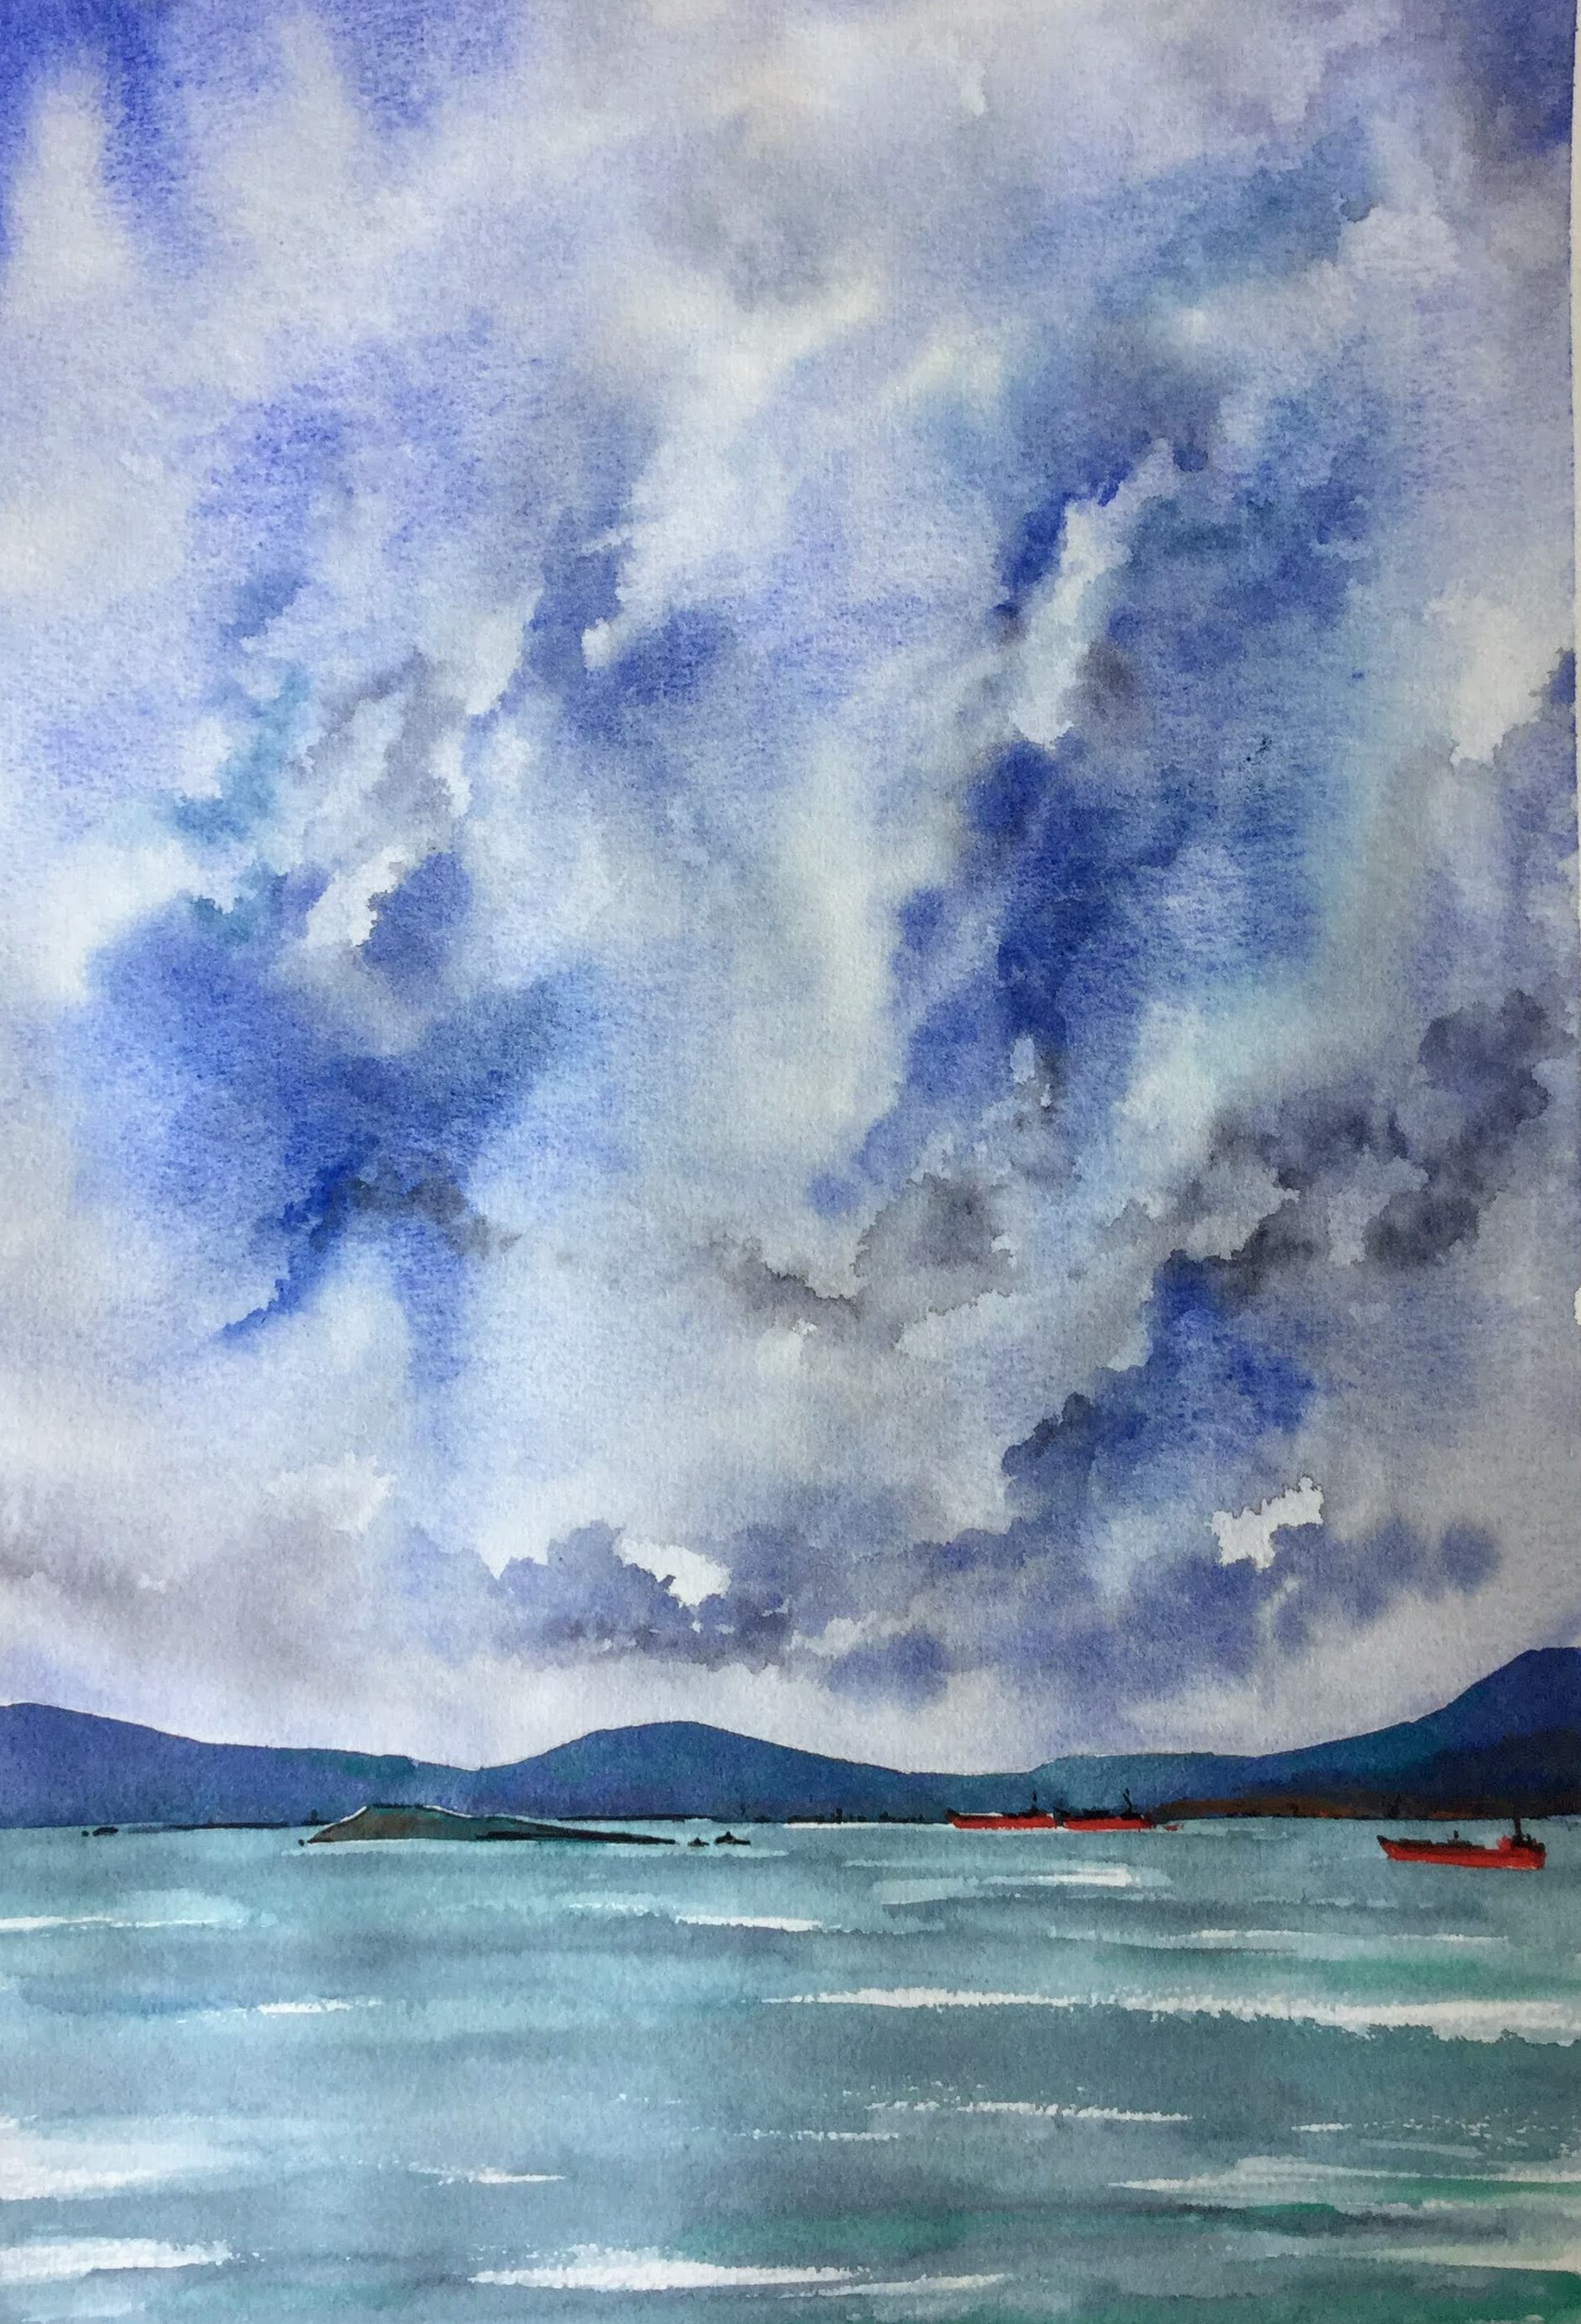 Imaginary Ships under Magical Clouds